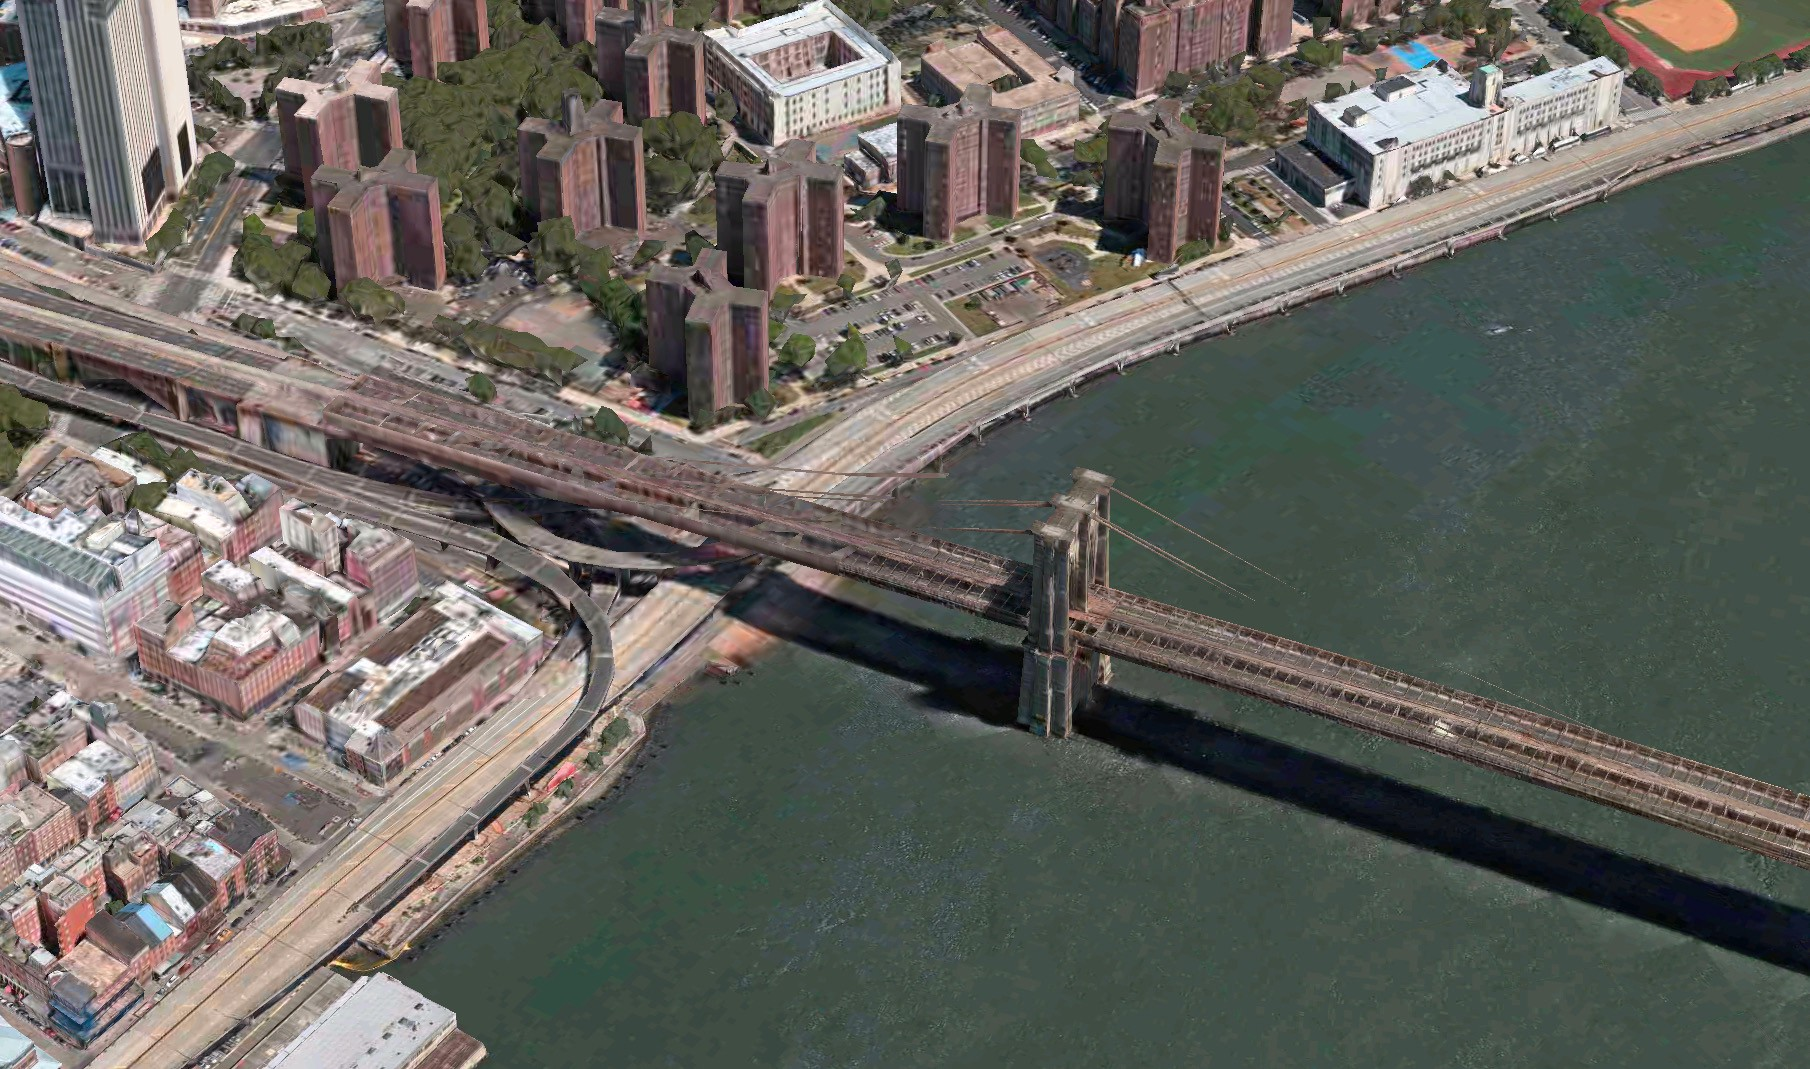 Current render of the Brooklyn Bridge in 3D satellite view on Apple Maps.